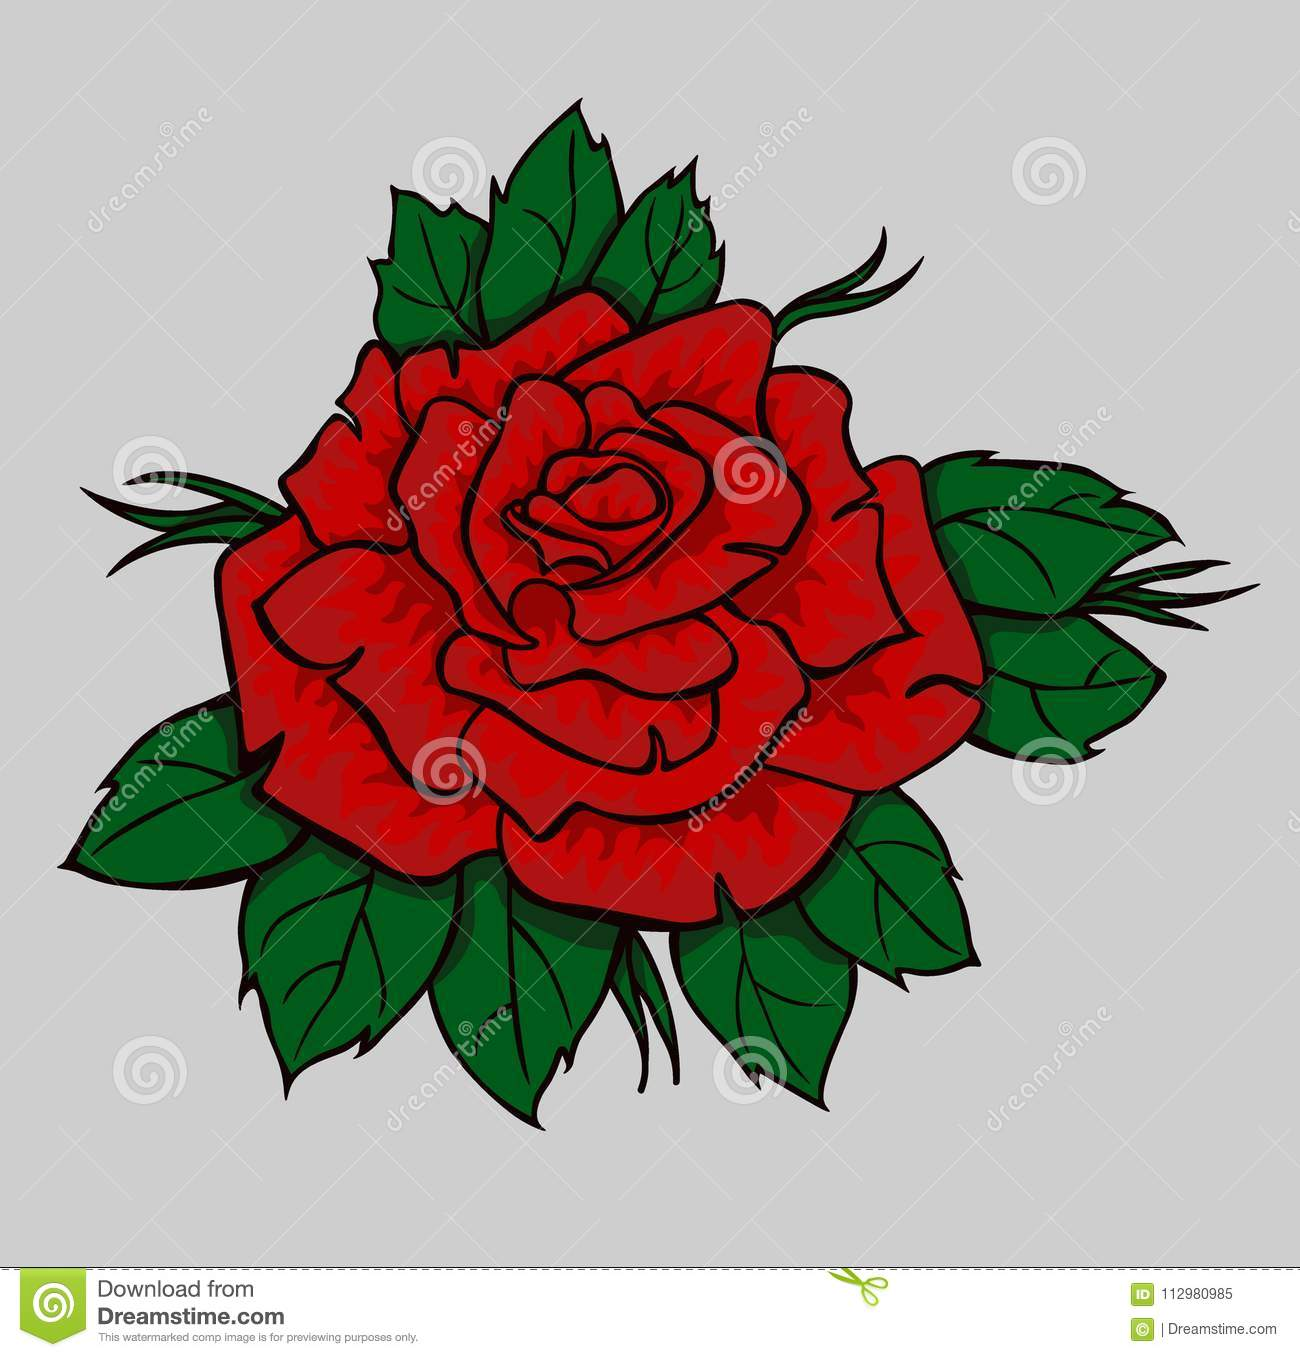 Red rose with green leaves. Isolated flower